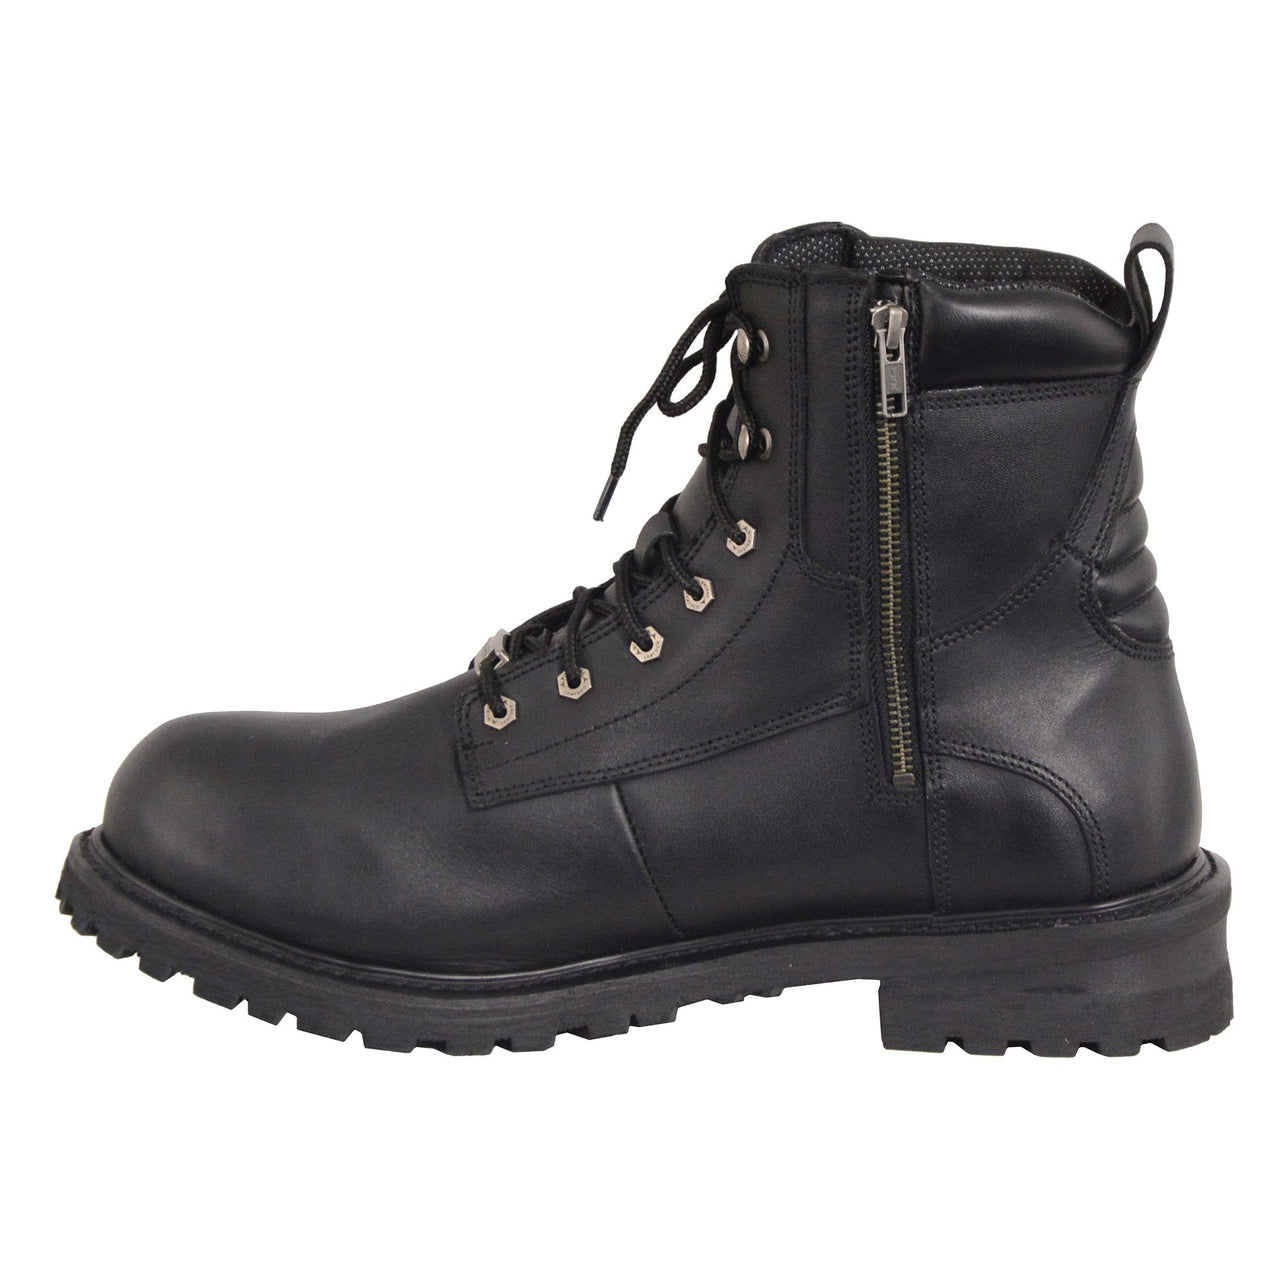 Men's Waterproof Logger Boot w/ Lace to Toe Design - HighwayLeather